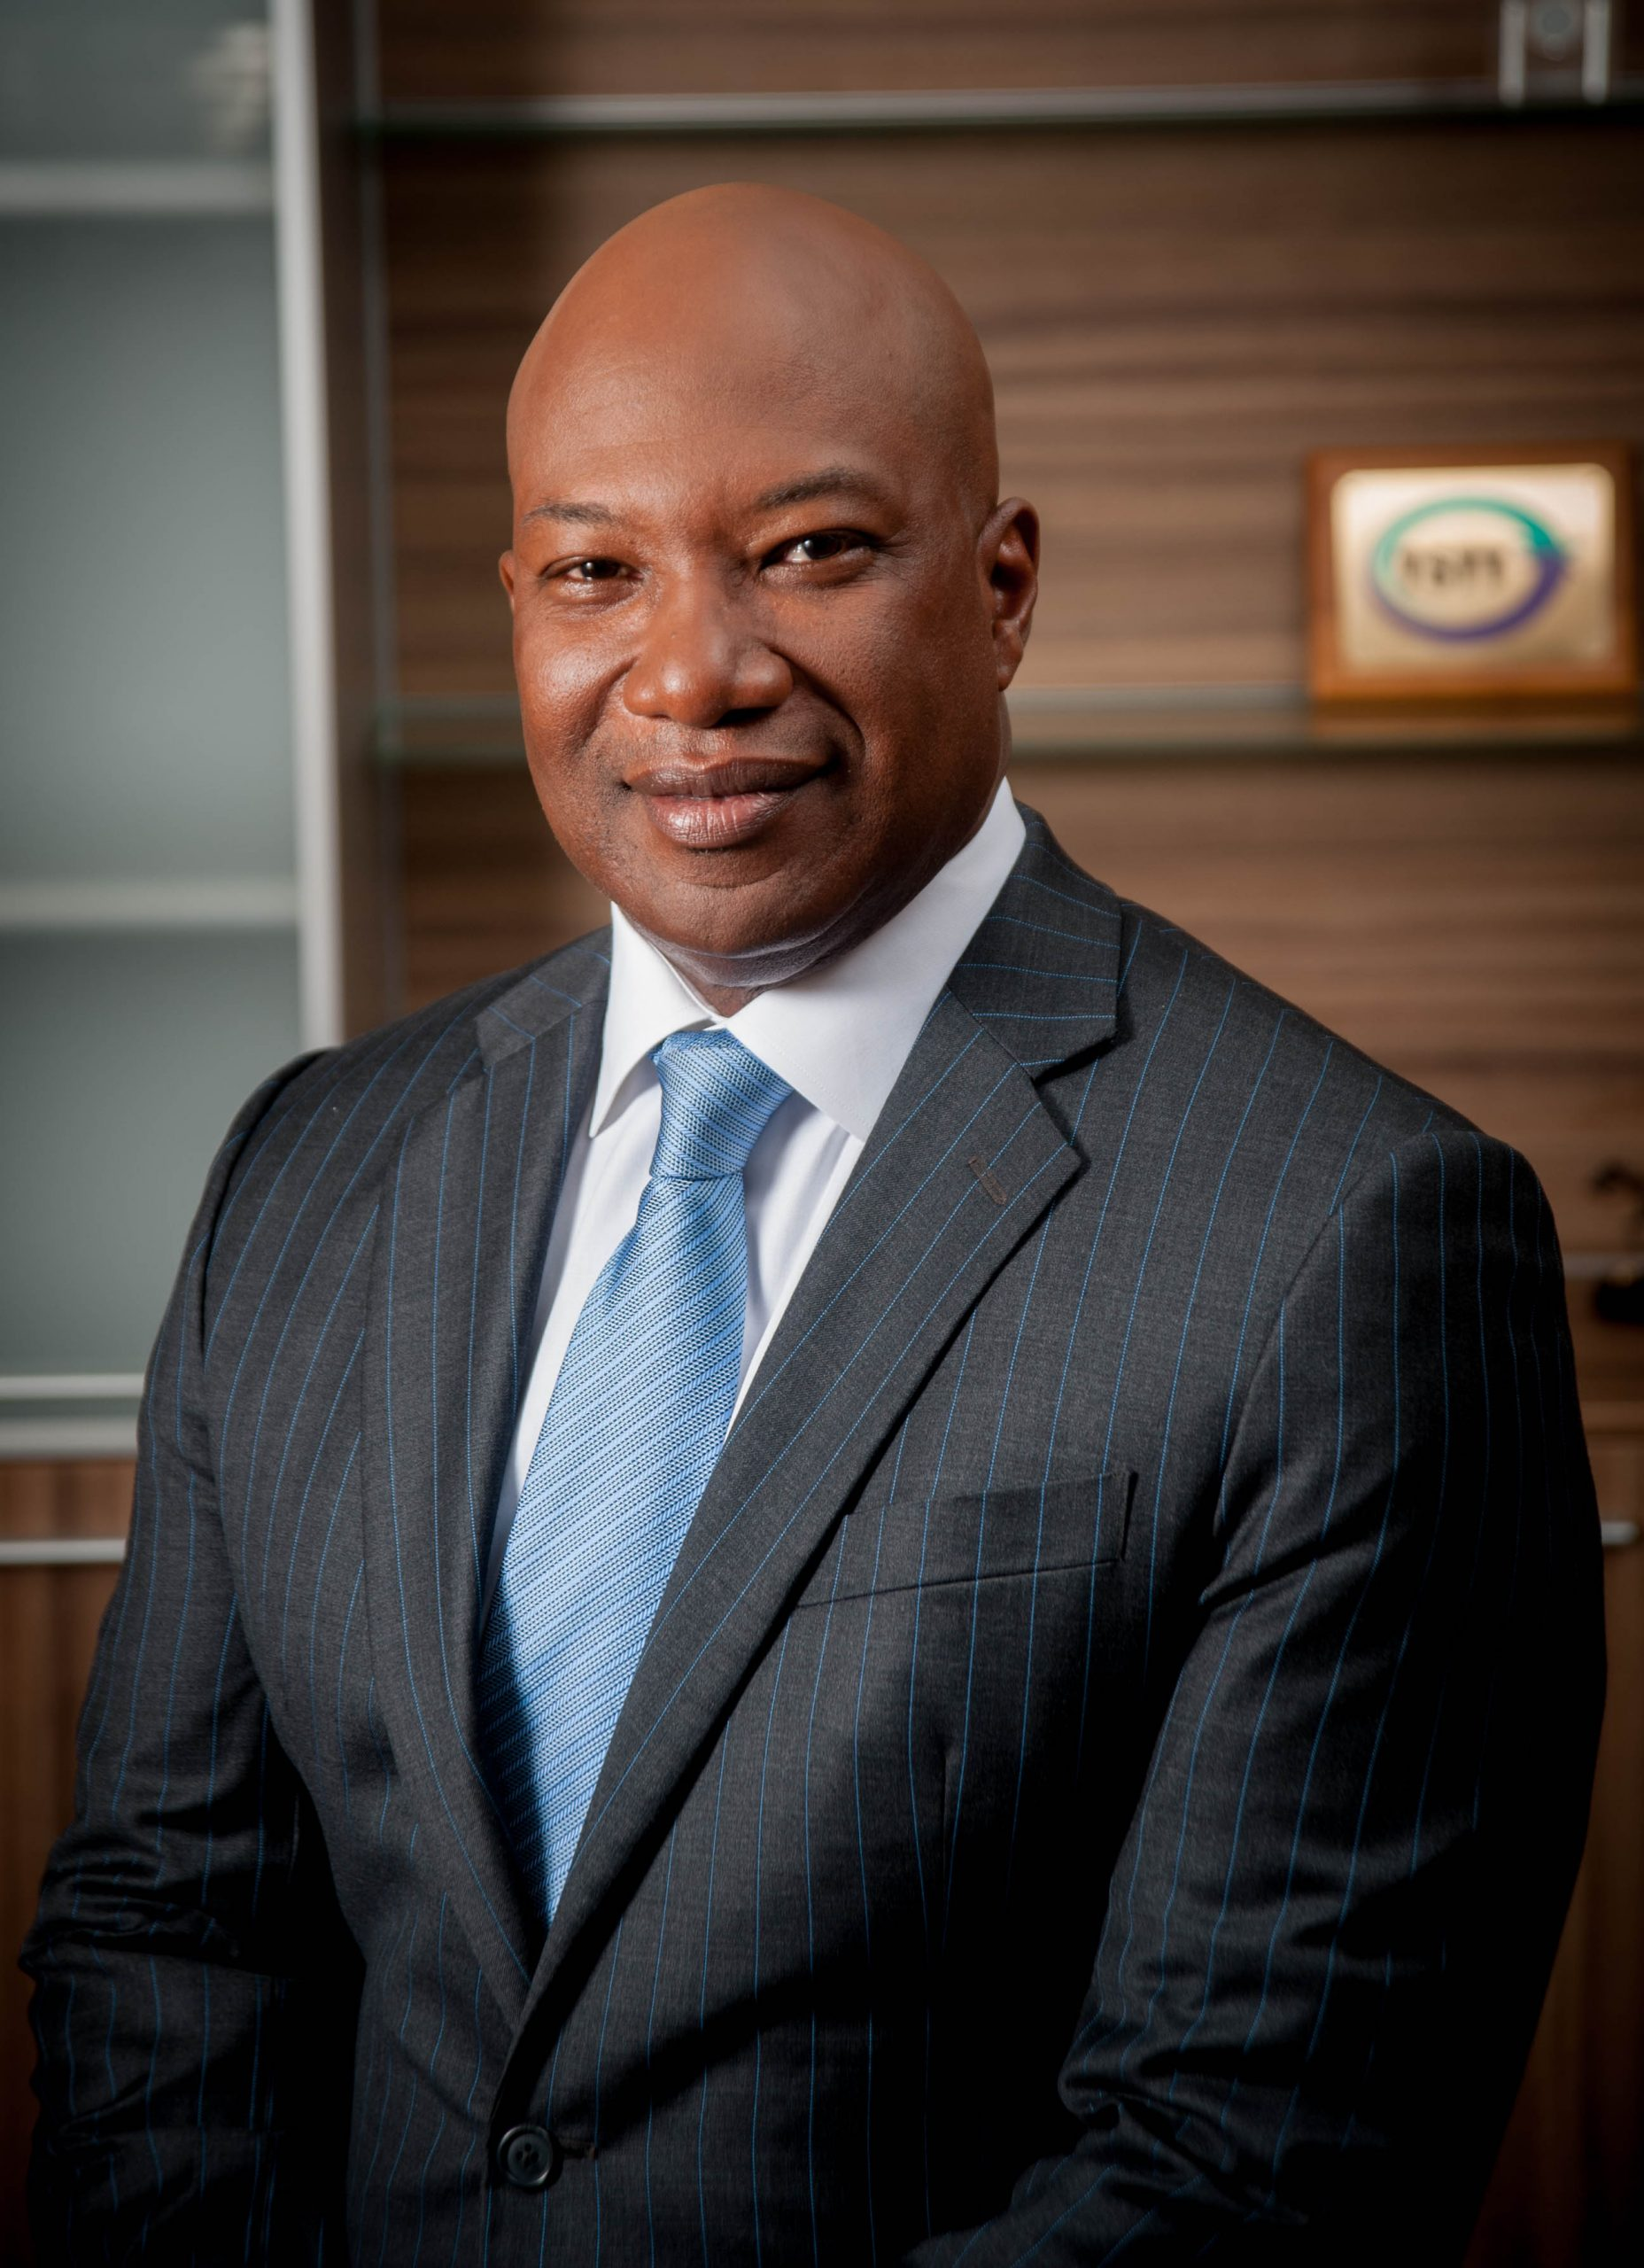 Dr. Ronald Walcott, Chief Executive Officer, TSTT